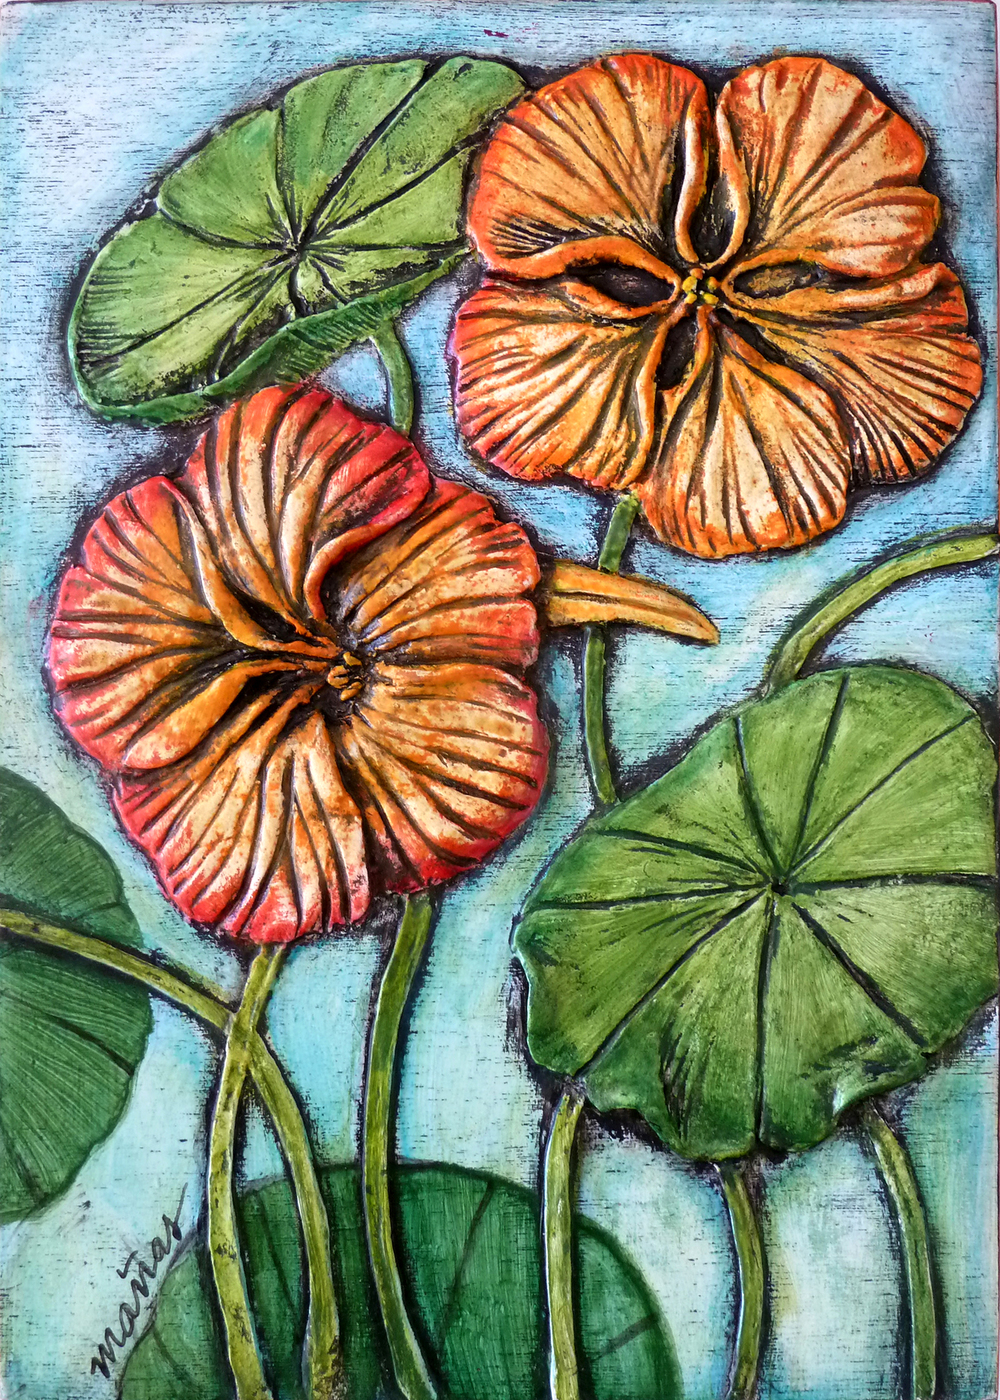 Nasturshiums